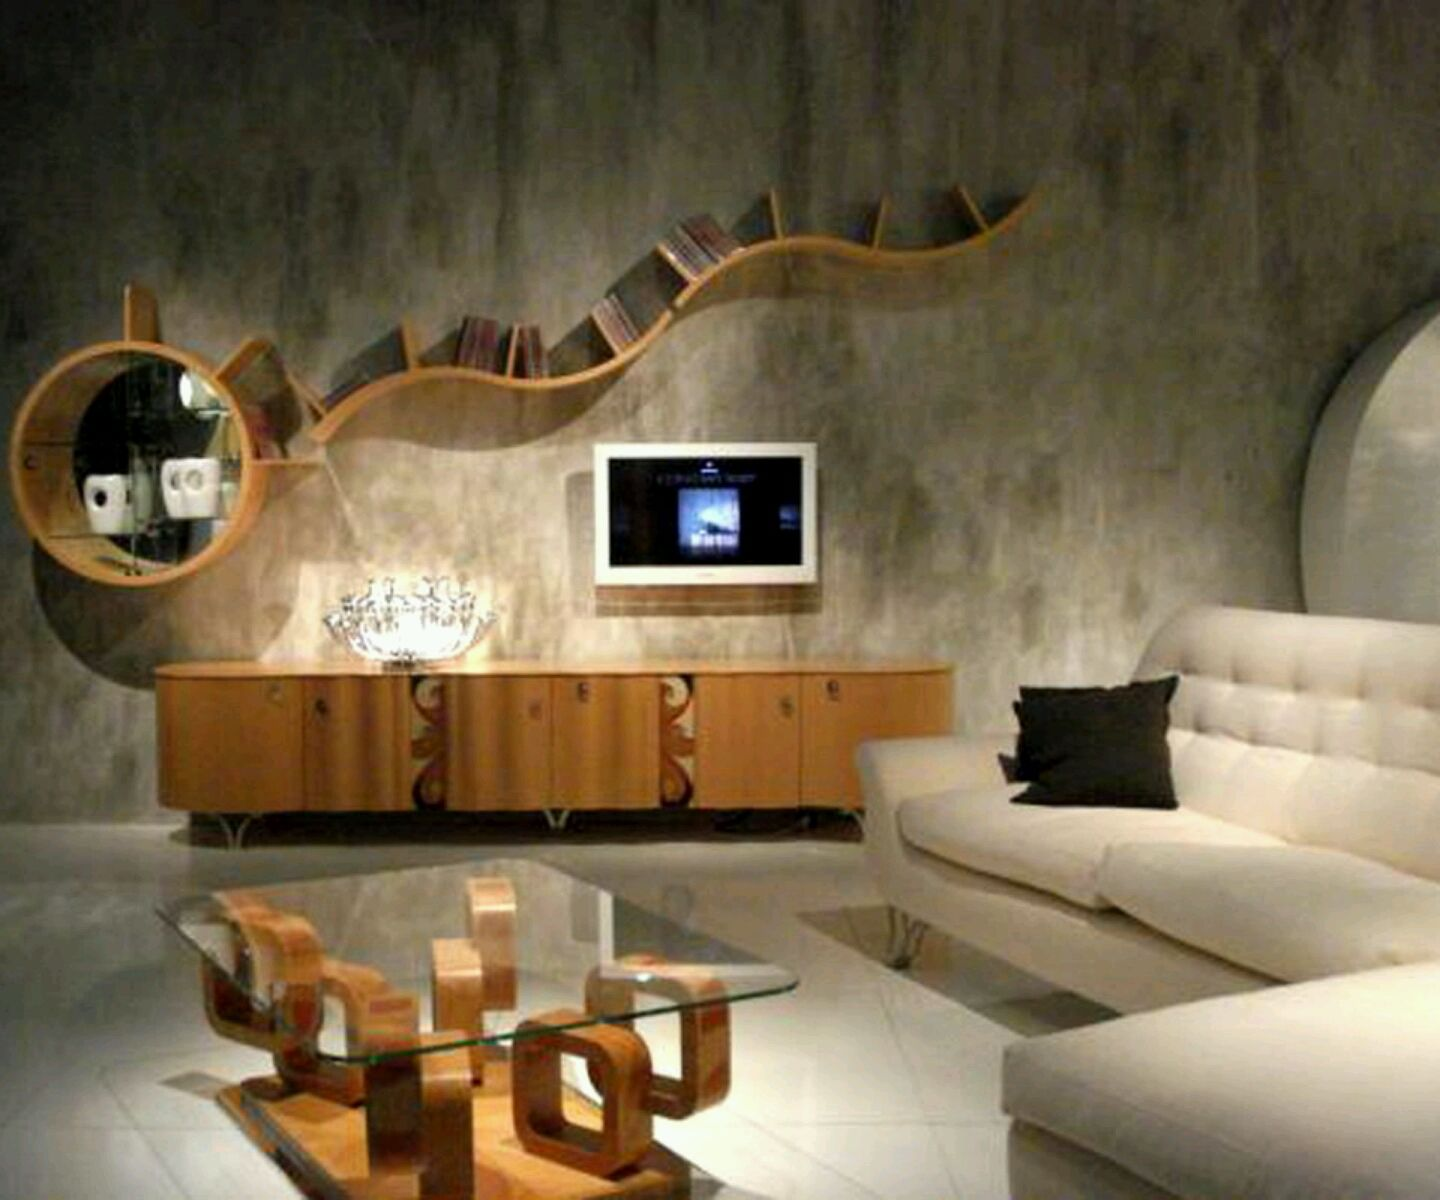 Wooden Furniture Living Room Designs Nice Home Korean Modern Living Room Picture Qexv 3ds Max